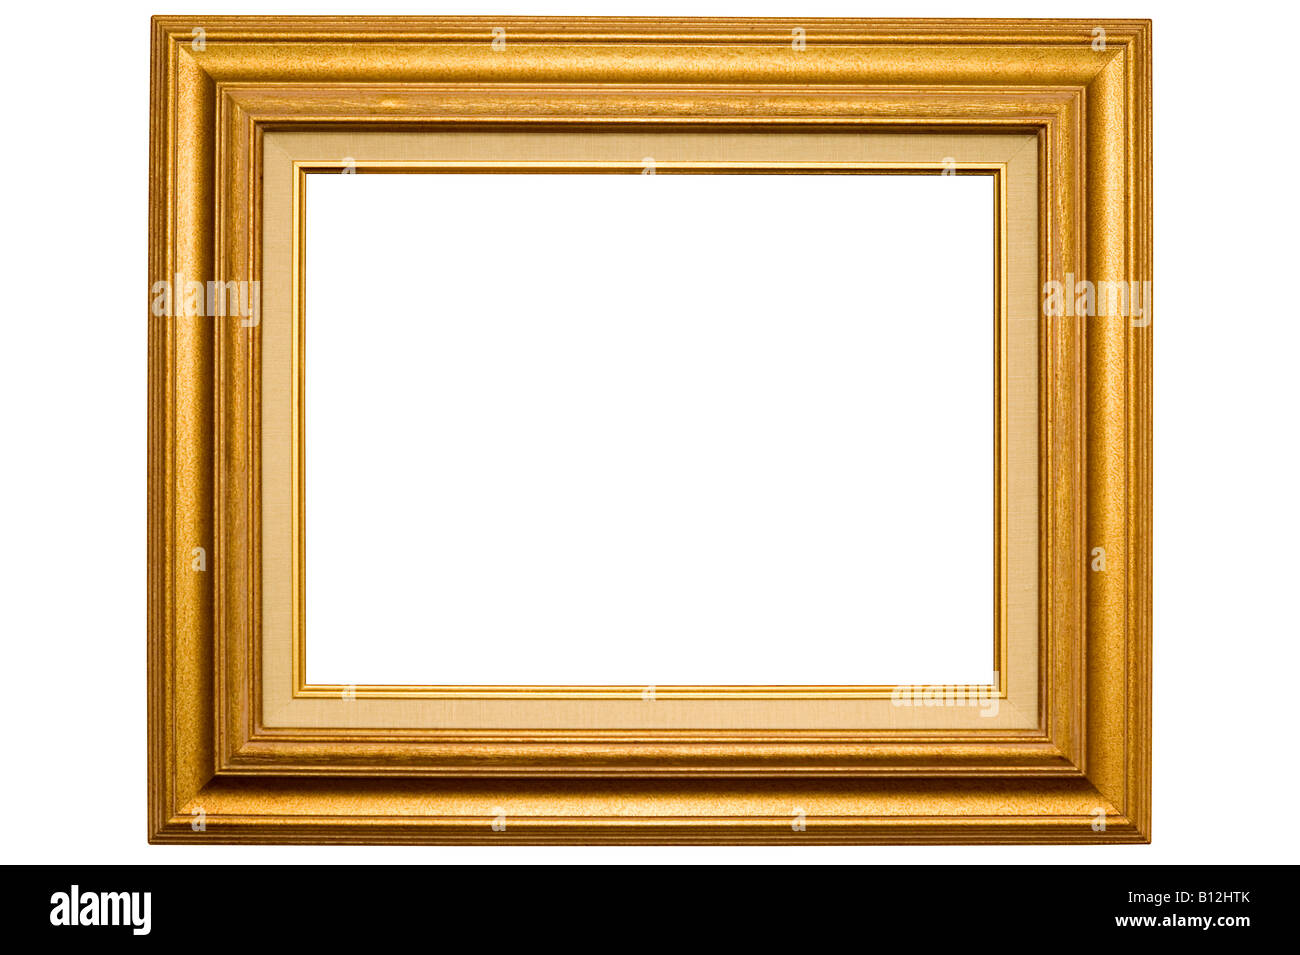 Leinwand Rahmen Gold Frame Border Stockfotos And Gold Frame Border Bilder